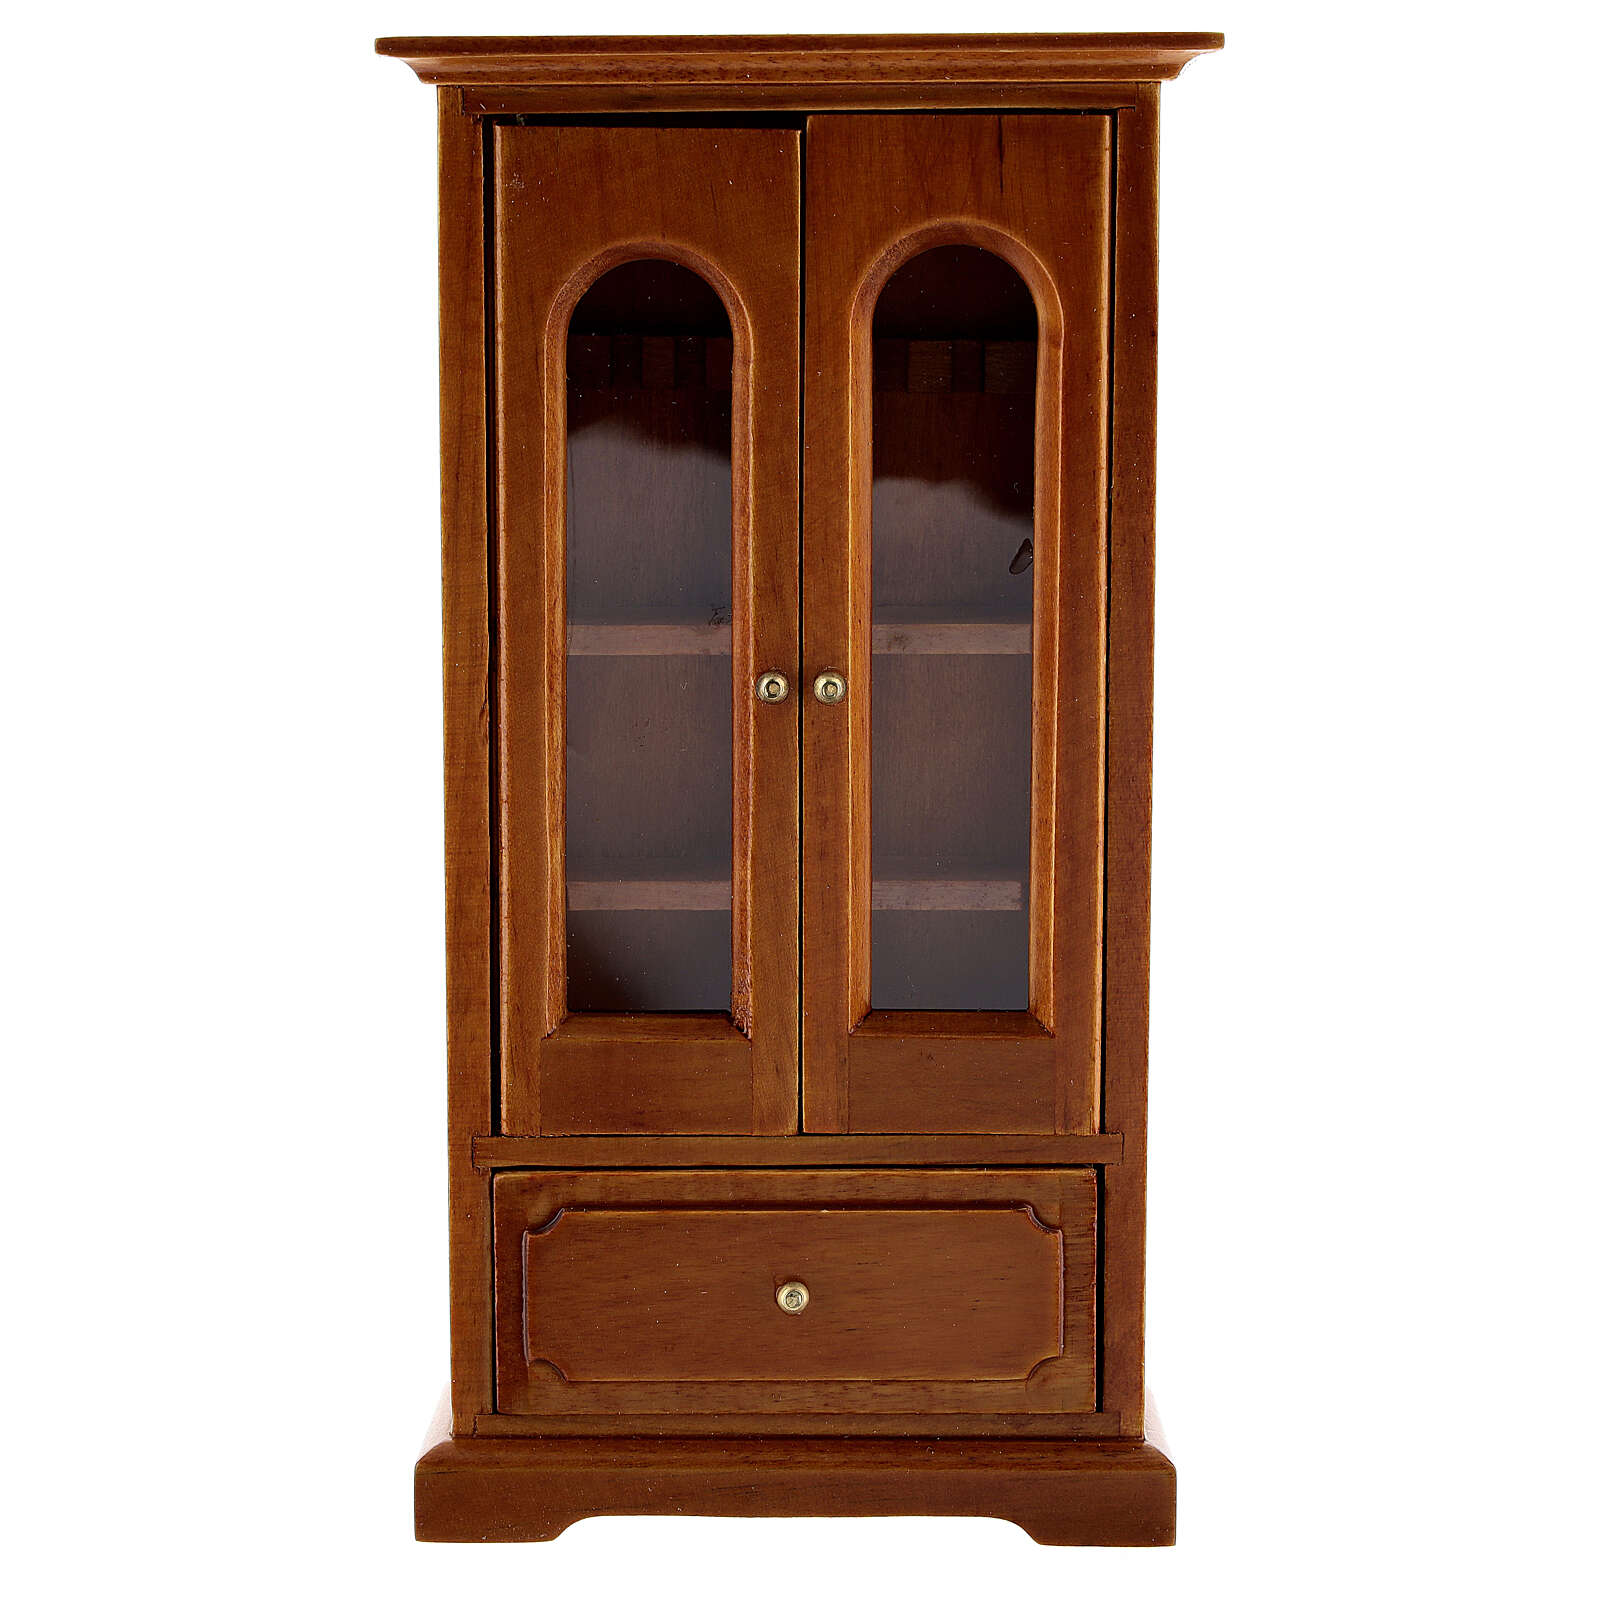 Wood cupboard 15x10x5 cm for Nativity Scene with 12 cm figurines 4